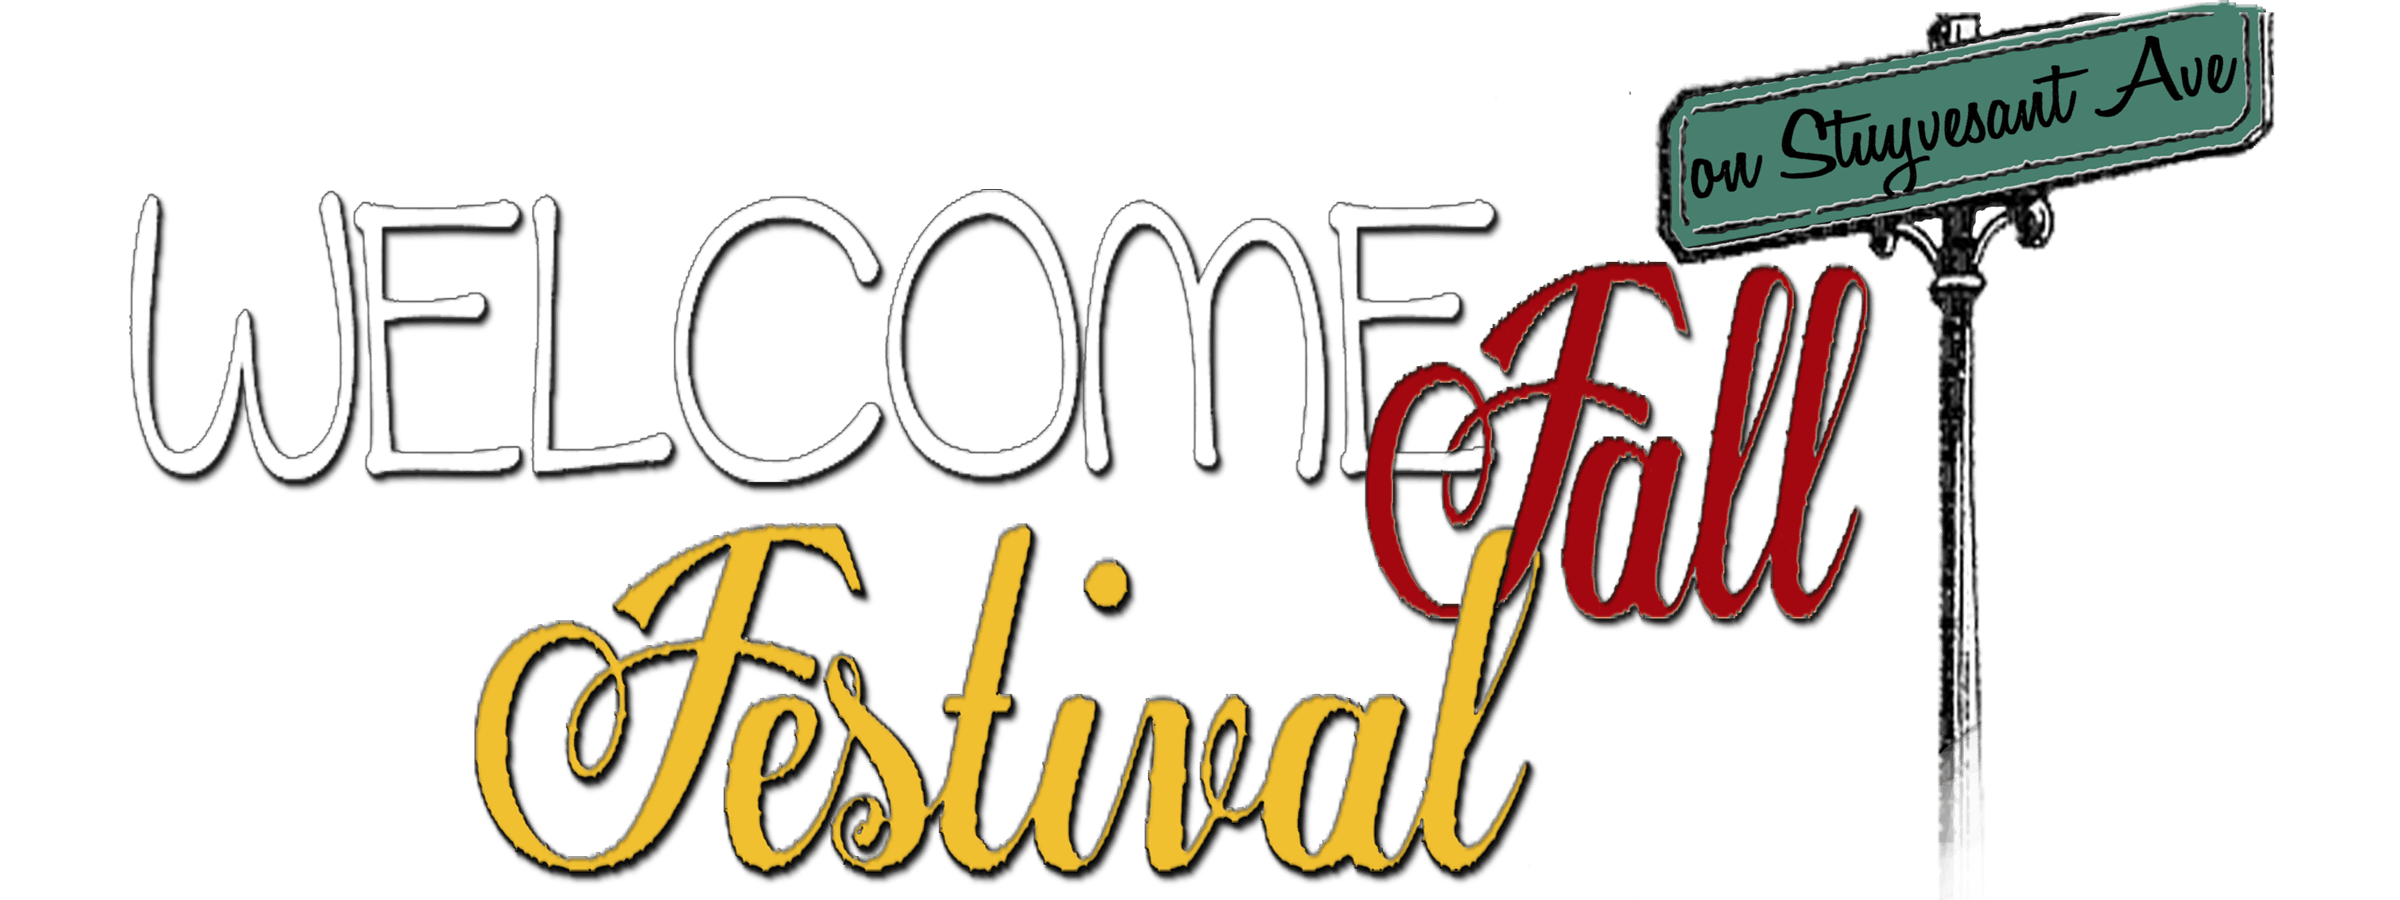 Welcome Fall Festival